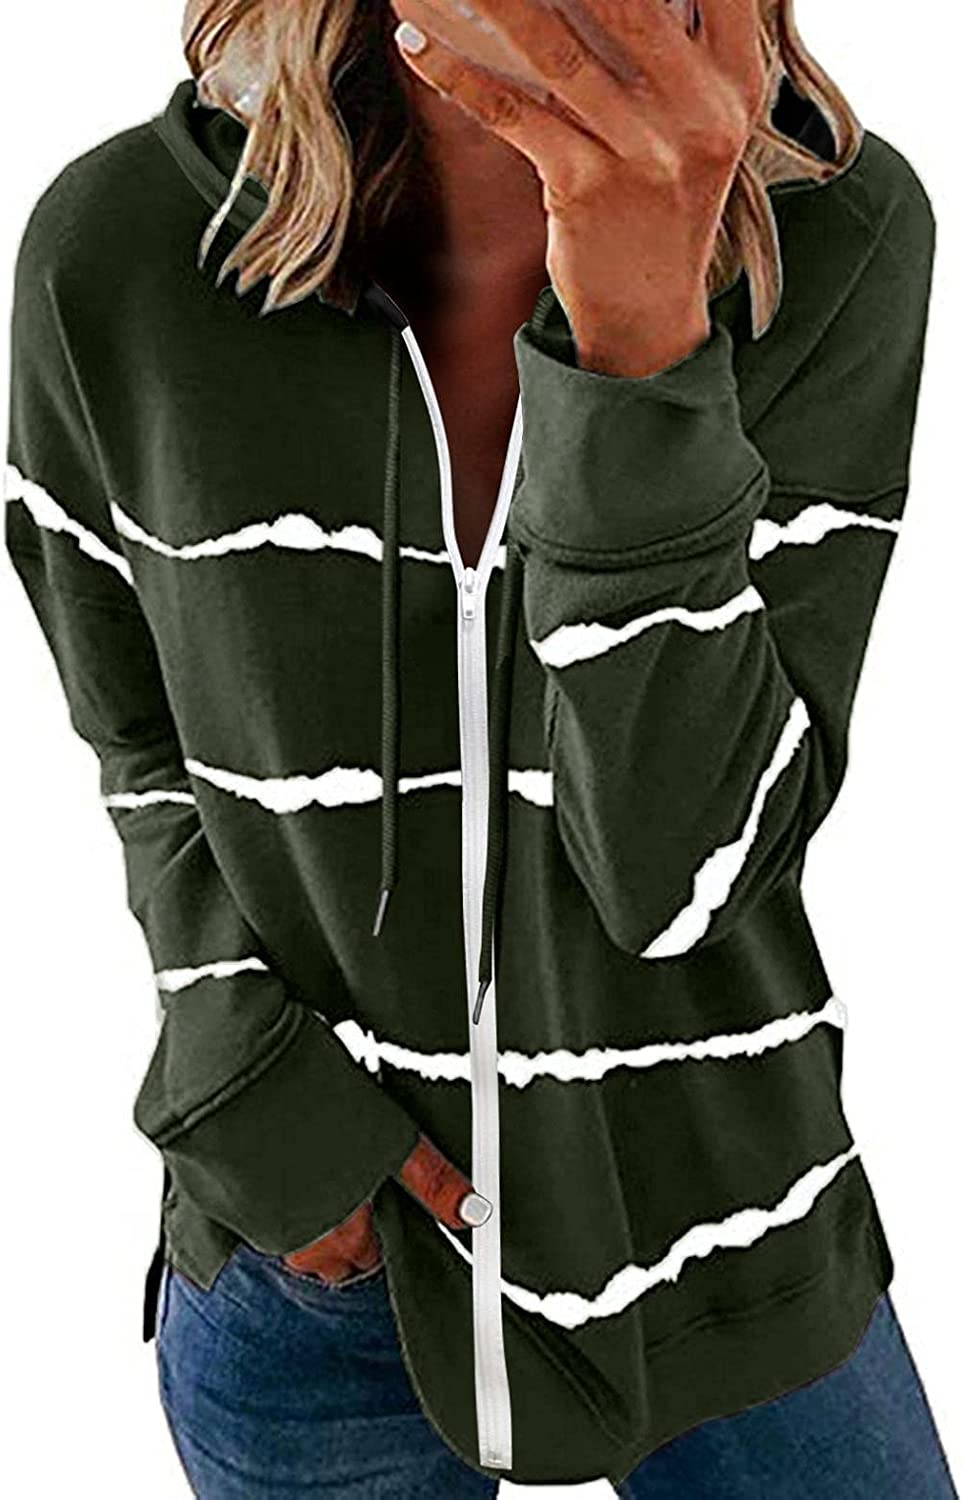 Nulairt Hoodies for Women,Womens Fashion Striped Hooded Sweatshirt Lightweight Zip Up Jackets with Pockets